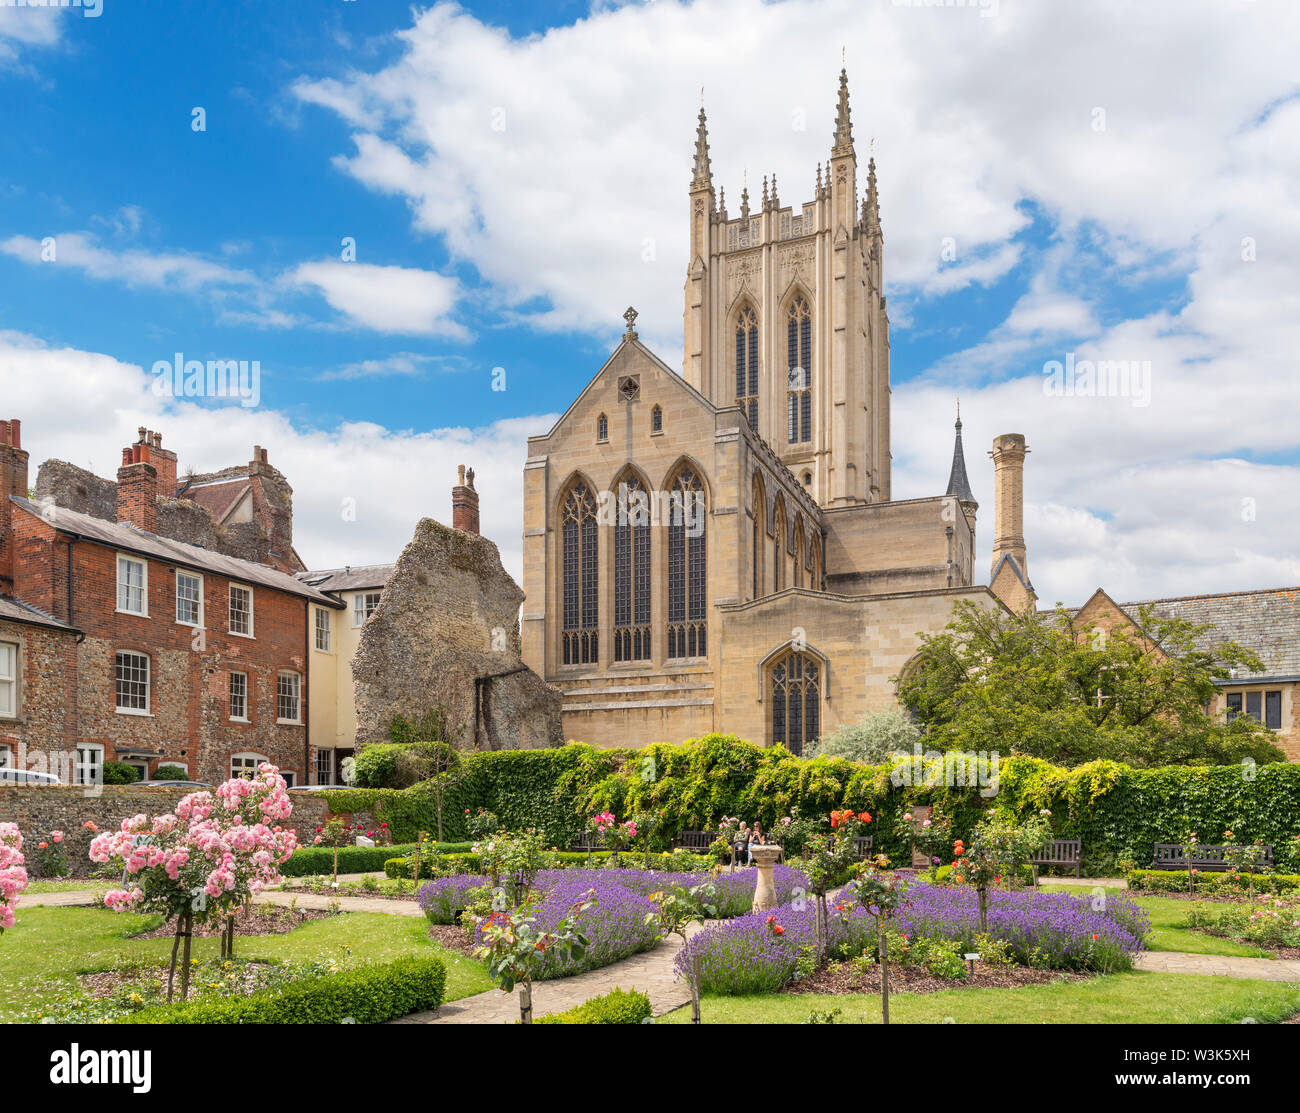 St Edmundsbury Cathedral from the Abbey Gardens, Bury St Edmunds, Suffolk, England, UK - Stock Image